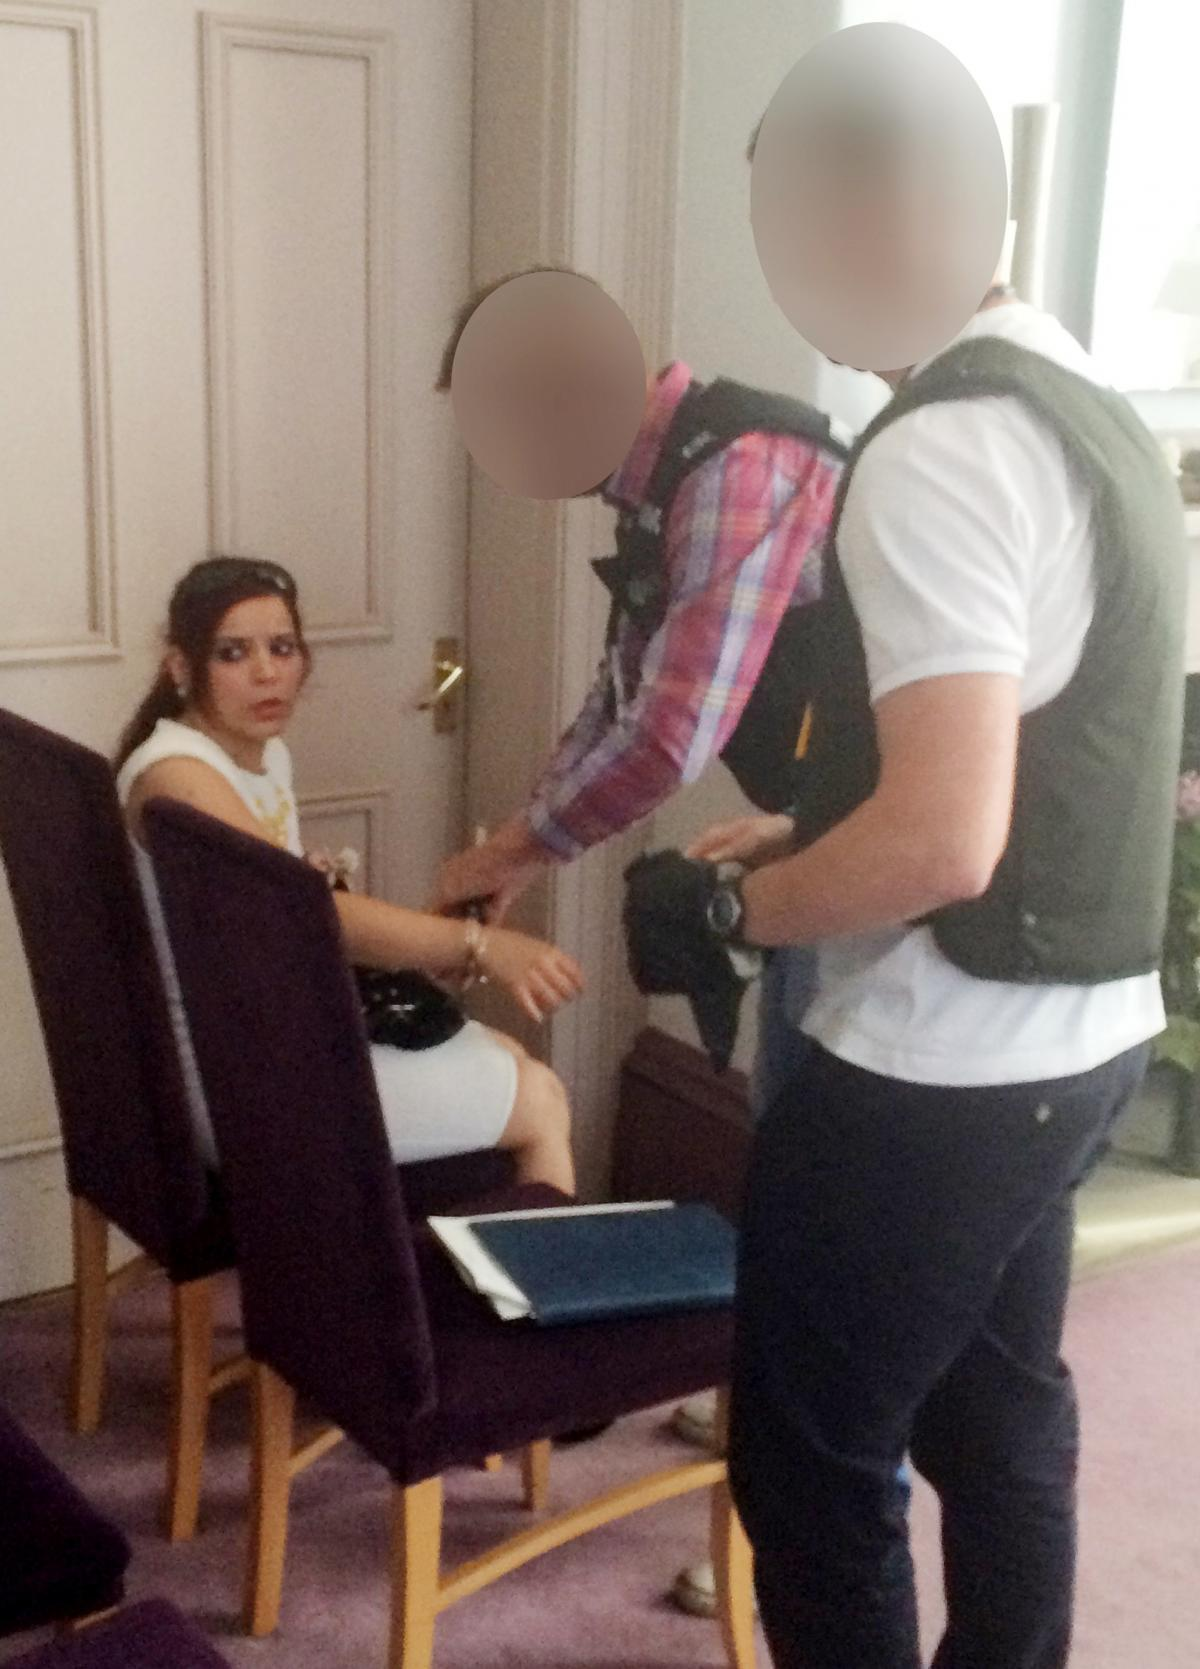 Bolton bride-to-be jailed after being arrested in wedding dress on ...